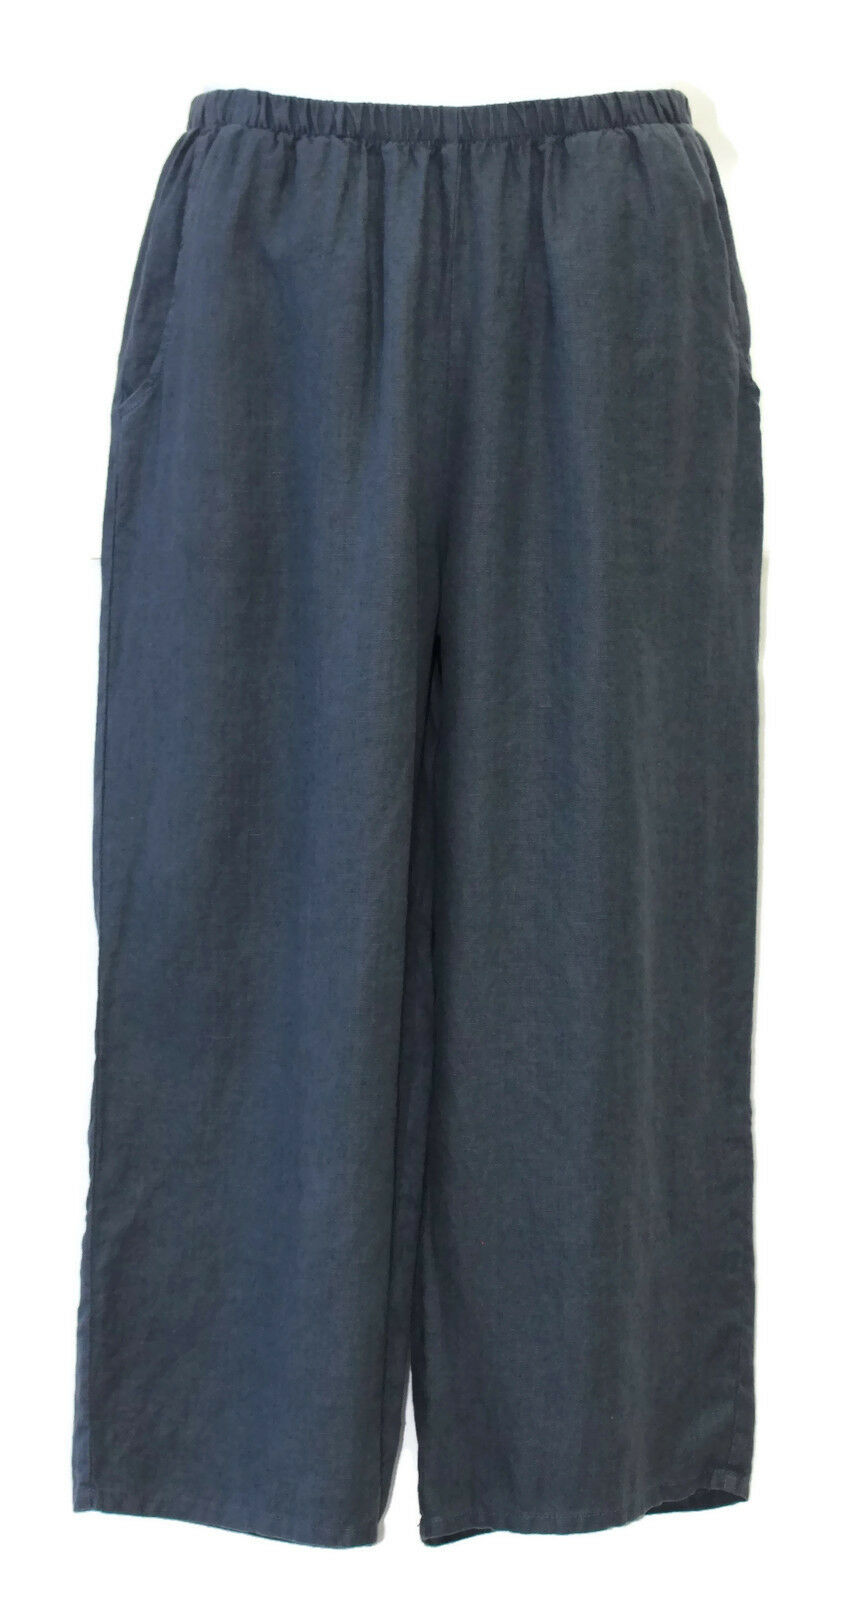 Flax Designs Floods NWT Linen Wide Leg Pants Slate  sizes Small &  3X